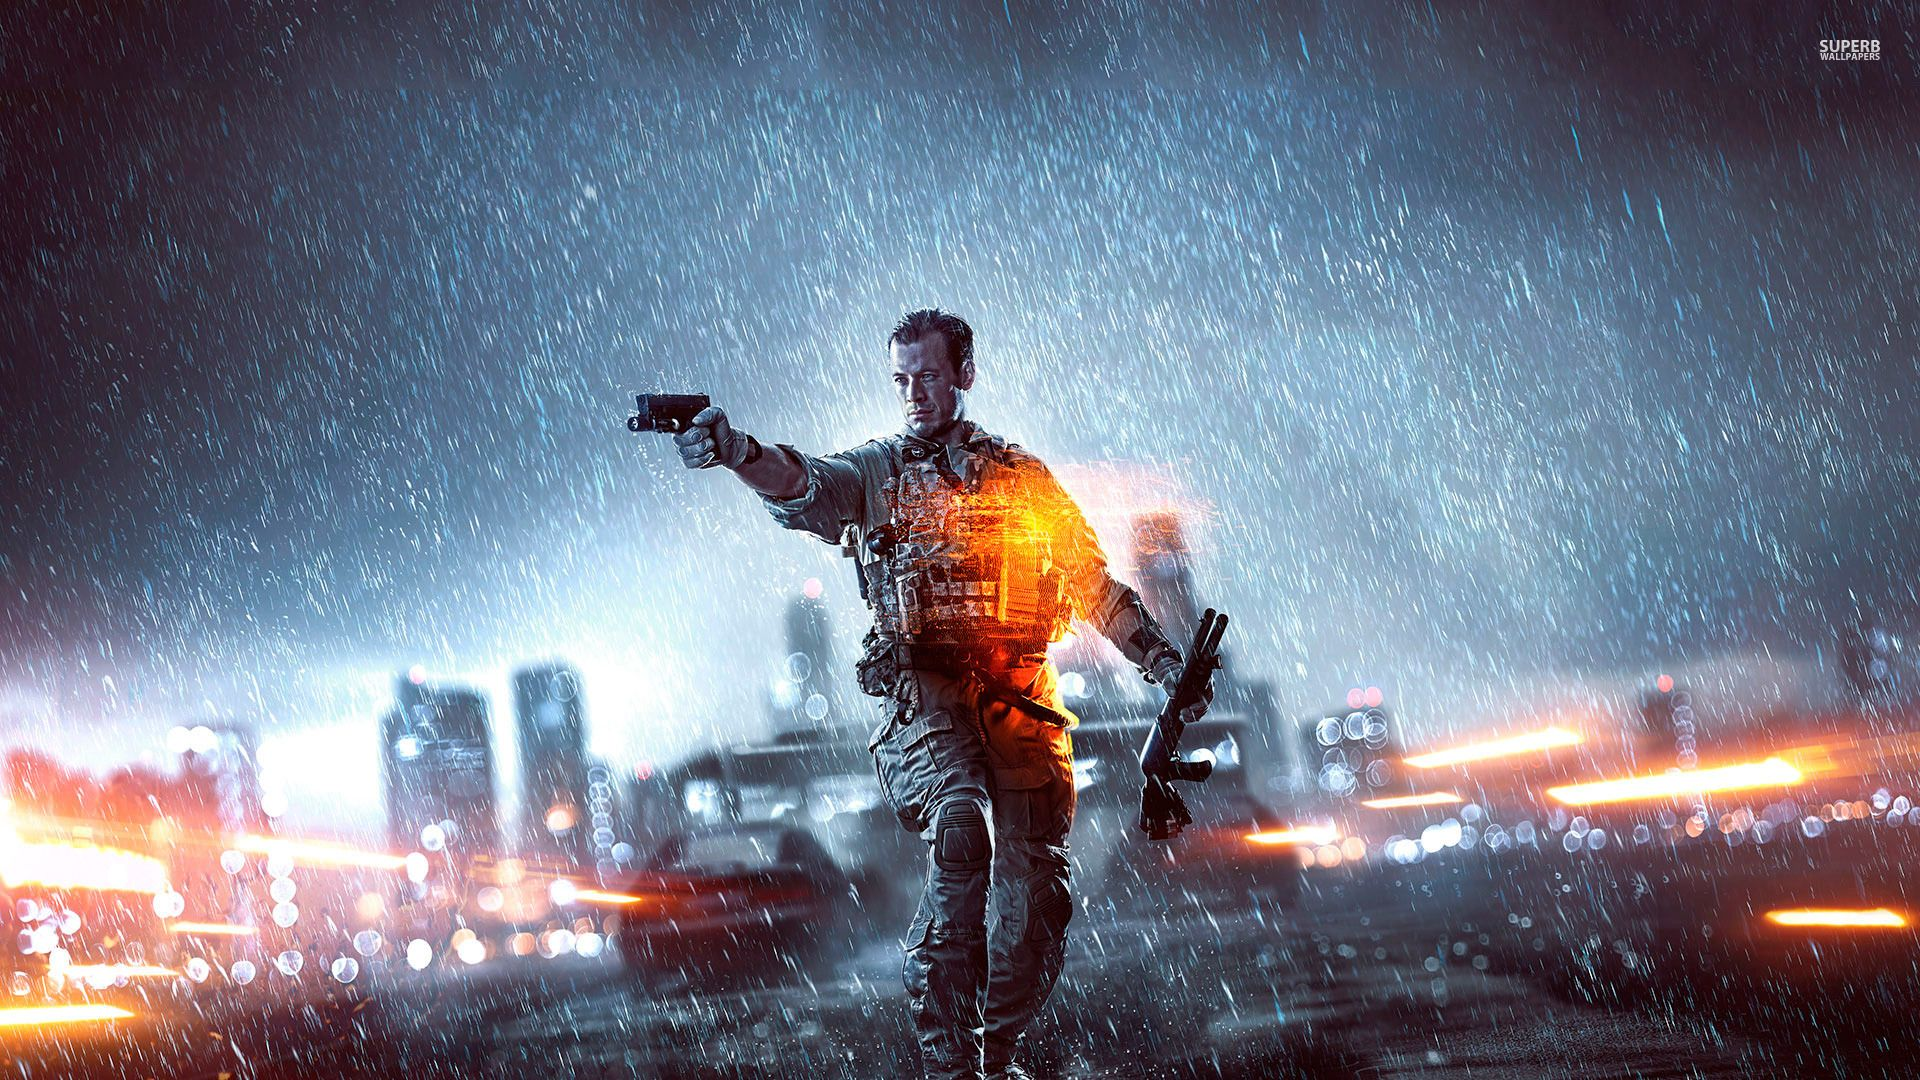 Bf Desktop Background Wallpaper Hd Battlefield 4Battlefield HardlineHd